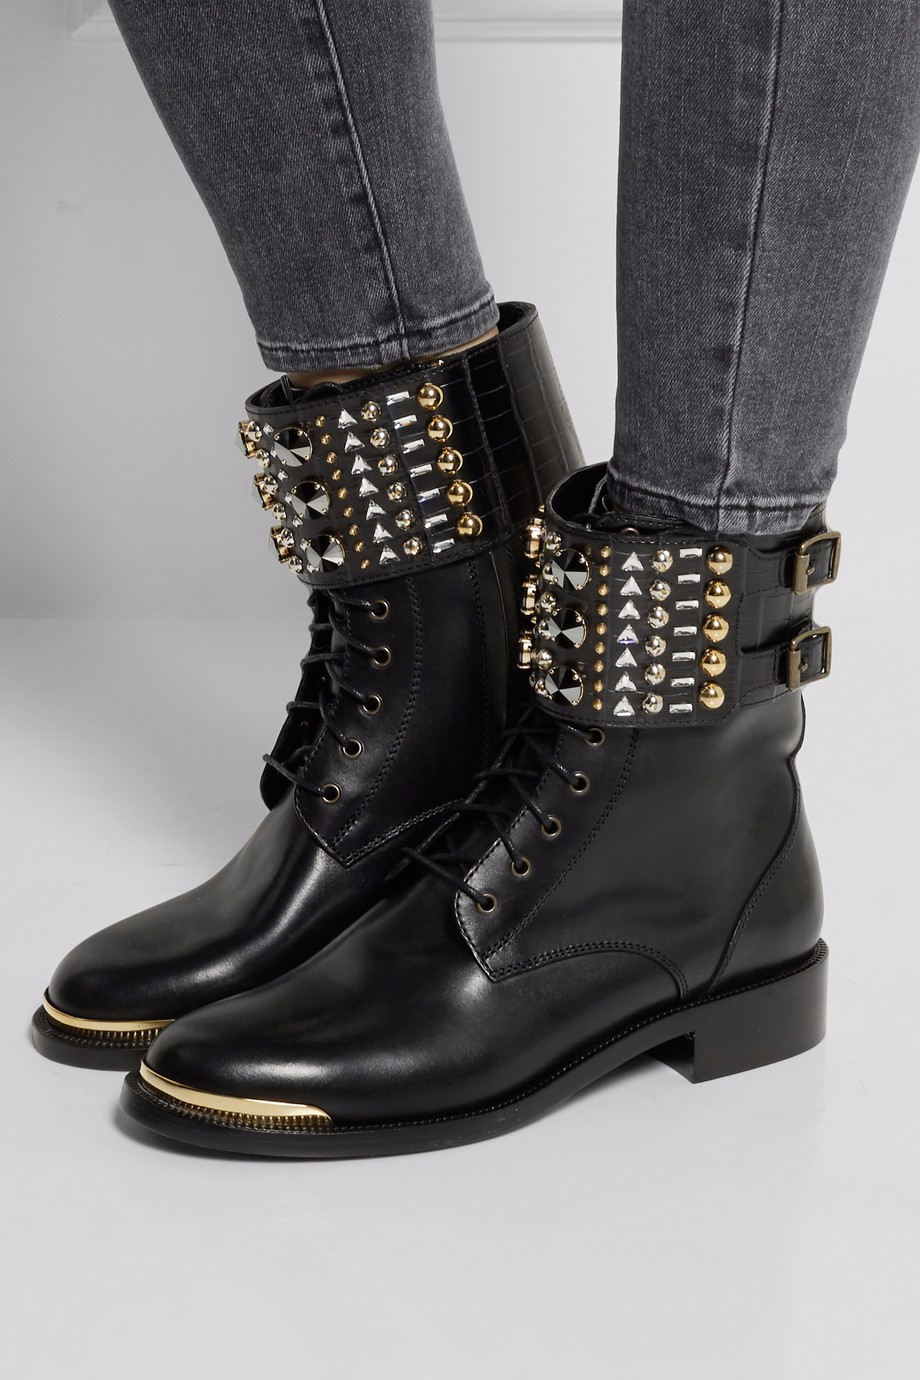 Women Low Heel Ankle Booties Lace up Studs Combat Boots Ladies Round Toe Block Heel Autumn Fall Winter Flat Shoes Plus Size beango fashion metal toe rivets women boots lace up round toe low heel motorcycle booties casual shoes woman big size 34 43eu